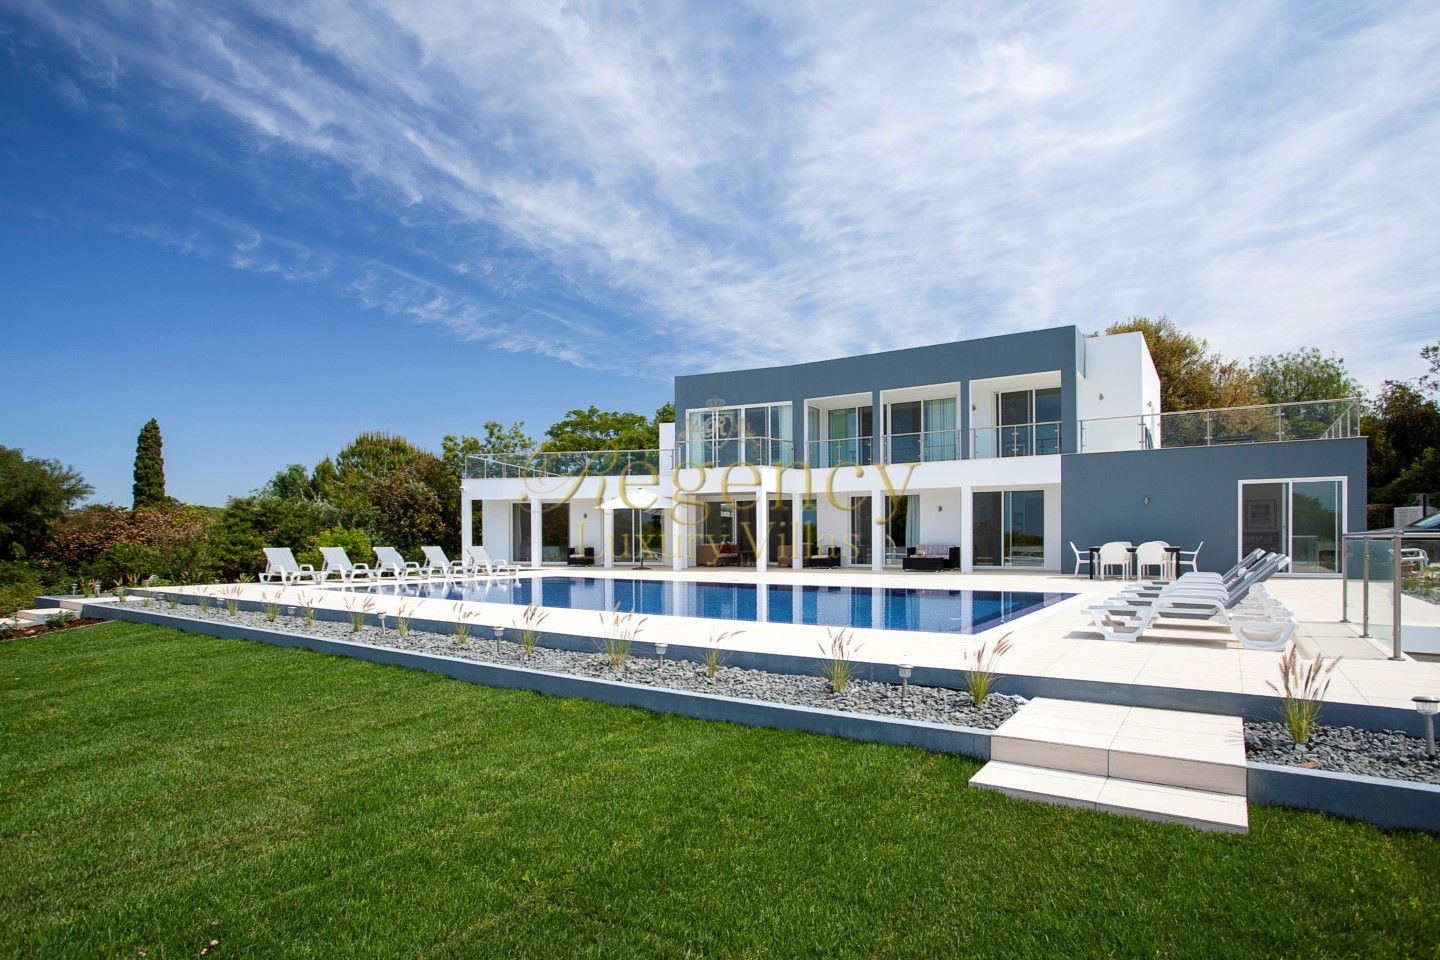 5 Bed Luxury Villa To Rent Family Holidays In Vale Do Lobo Portugal Regency Luxury Villas 1